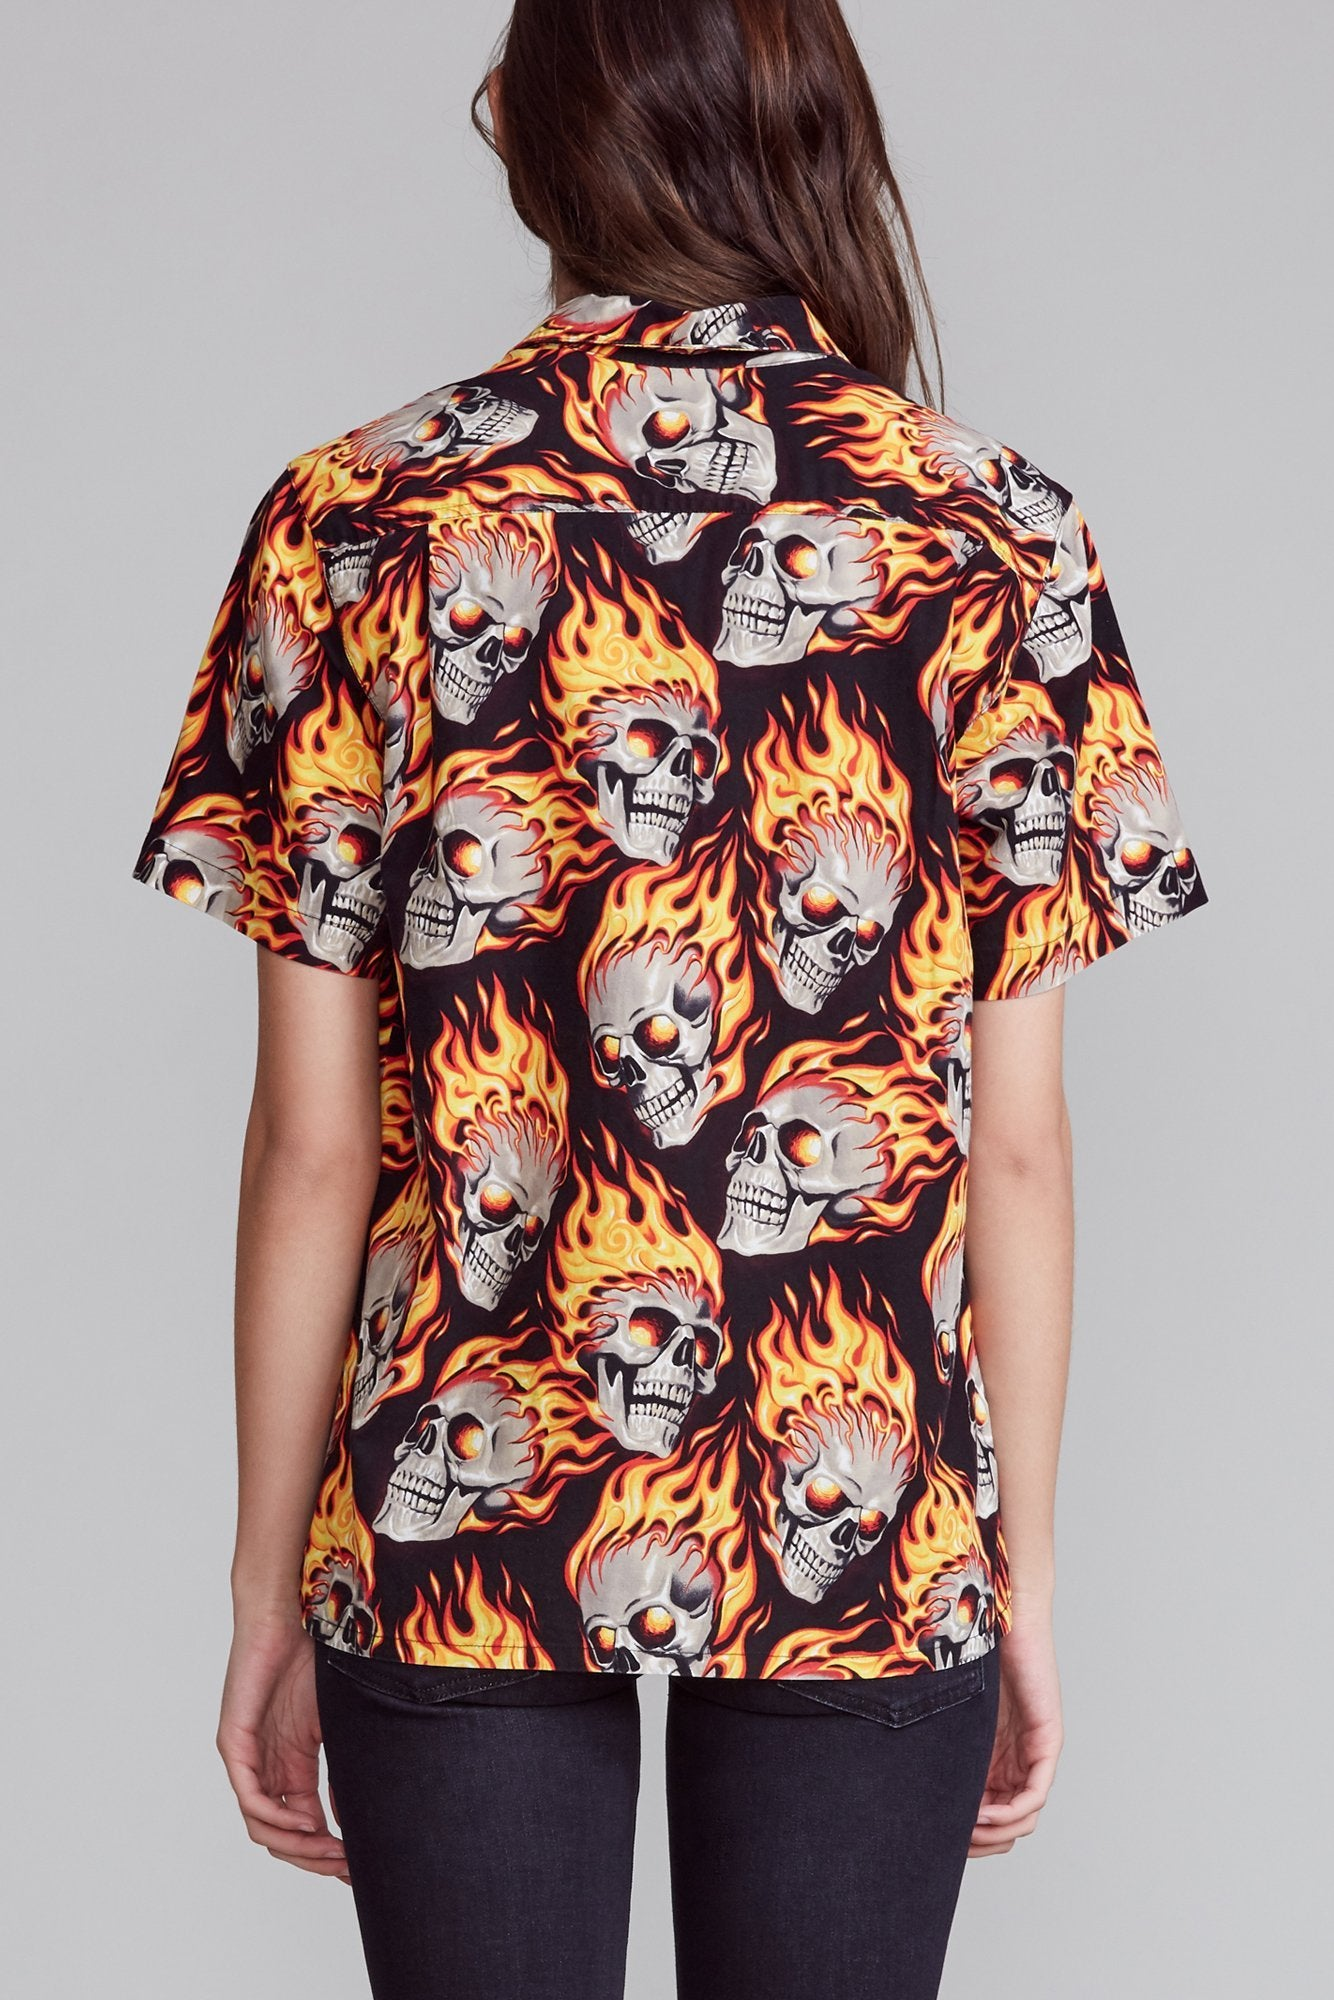 Tony Shirt - Flaming Hot Heads